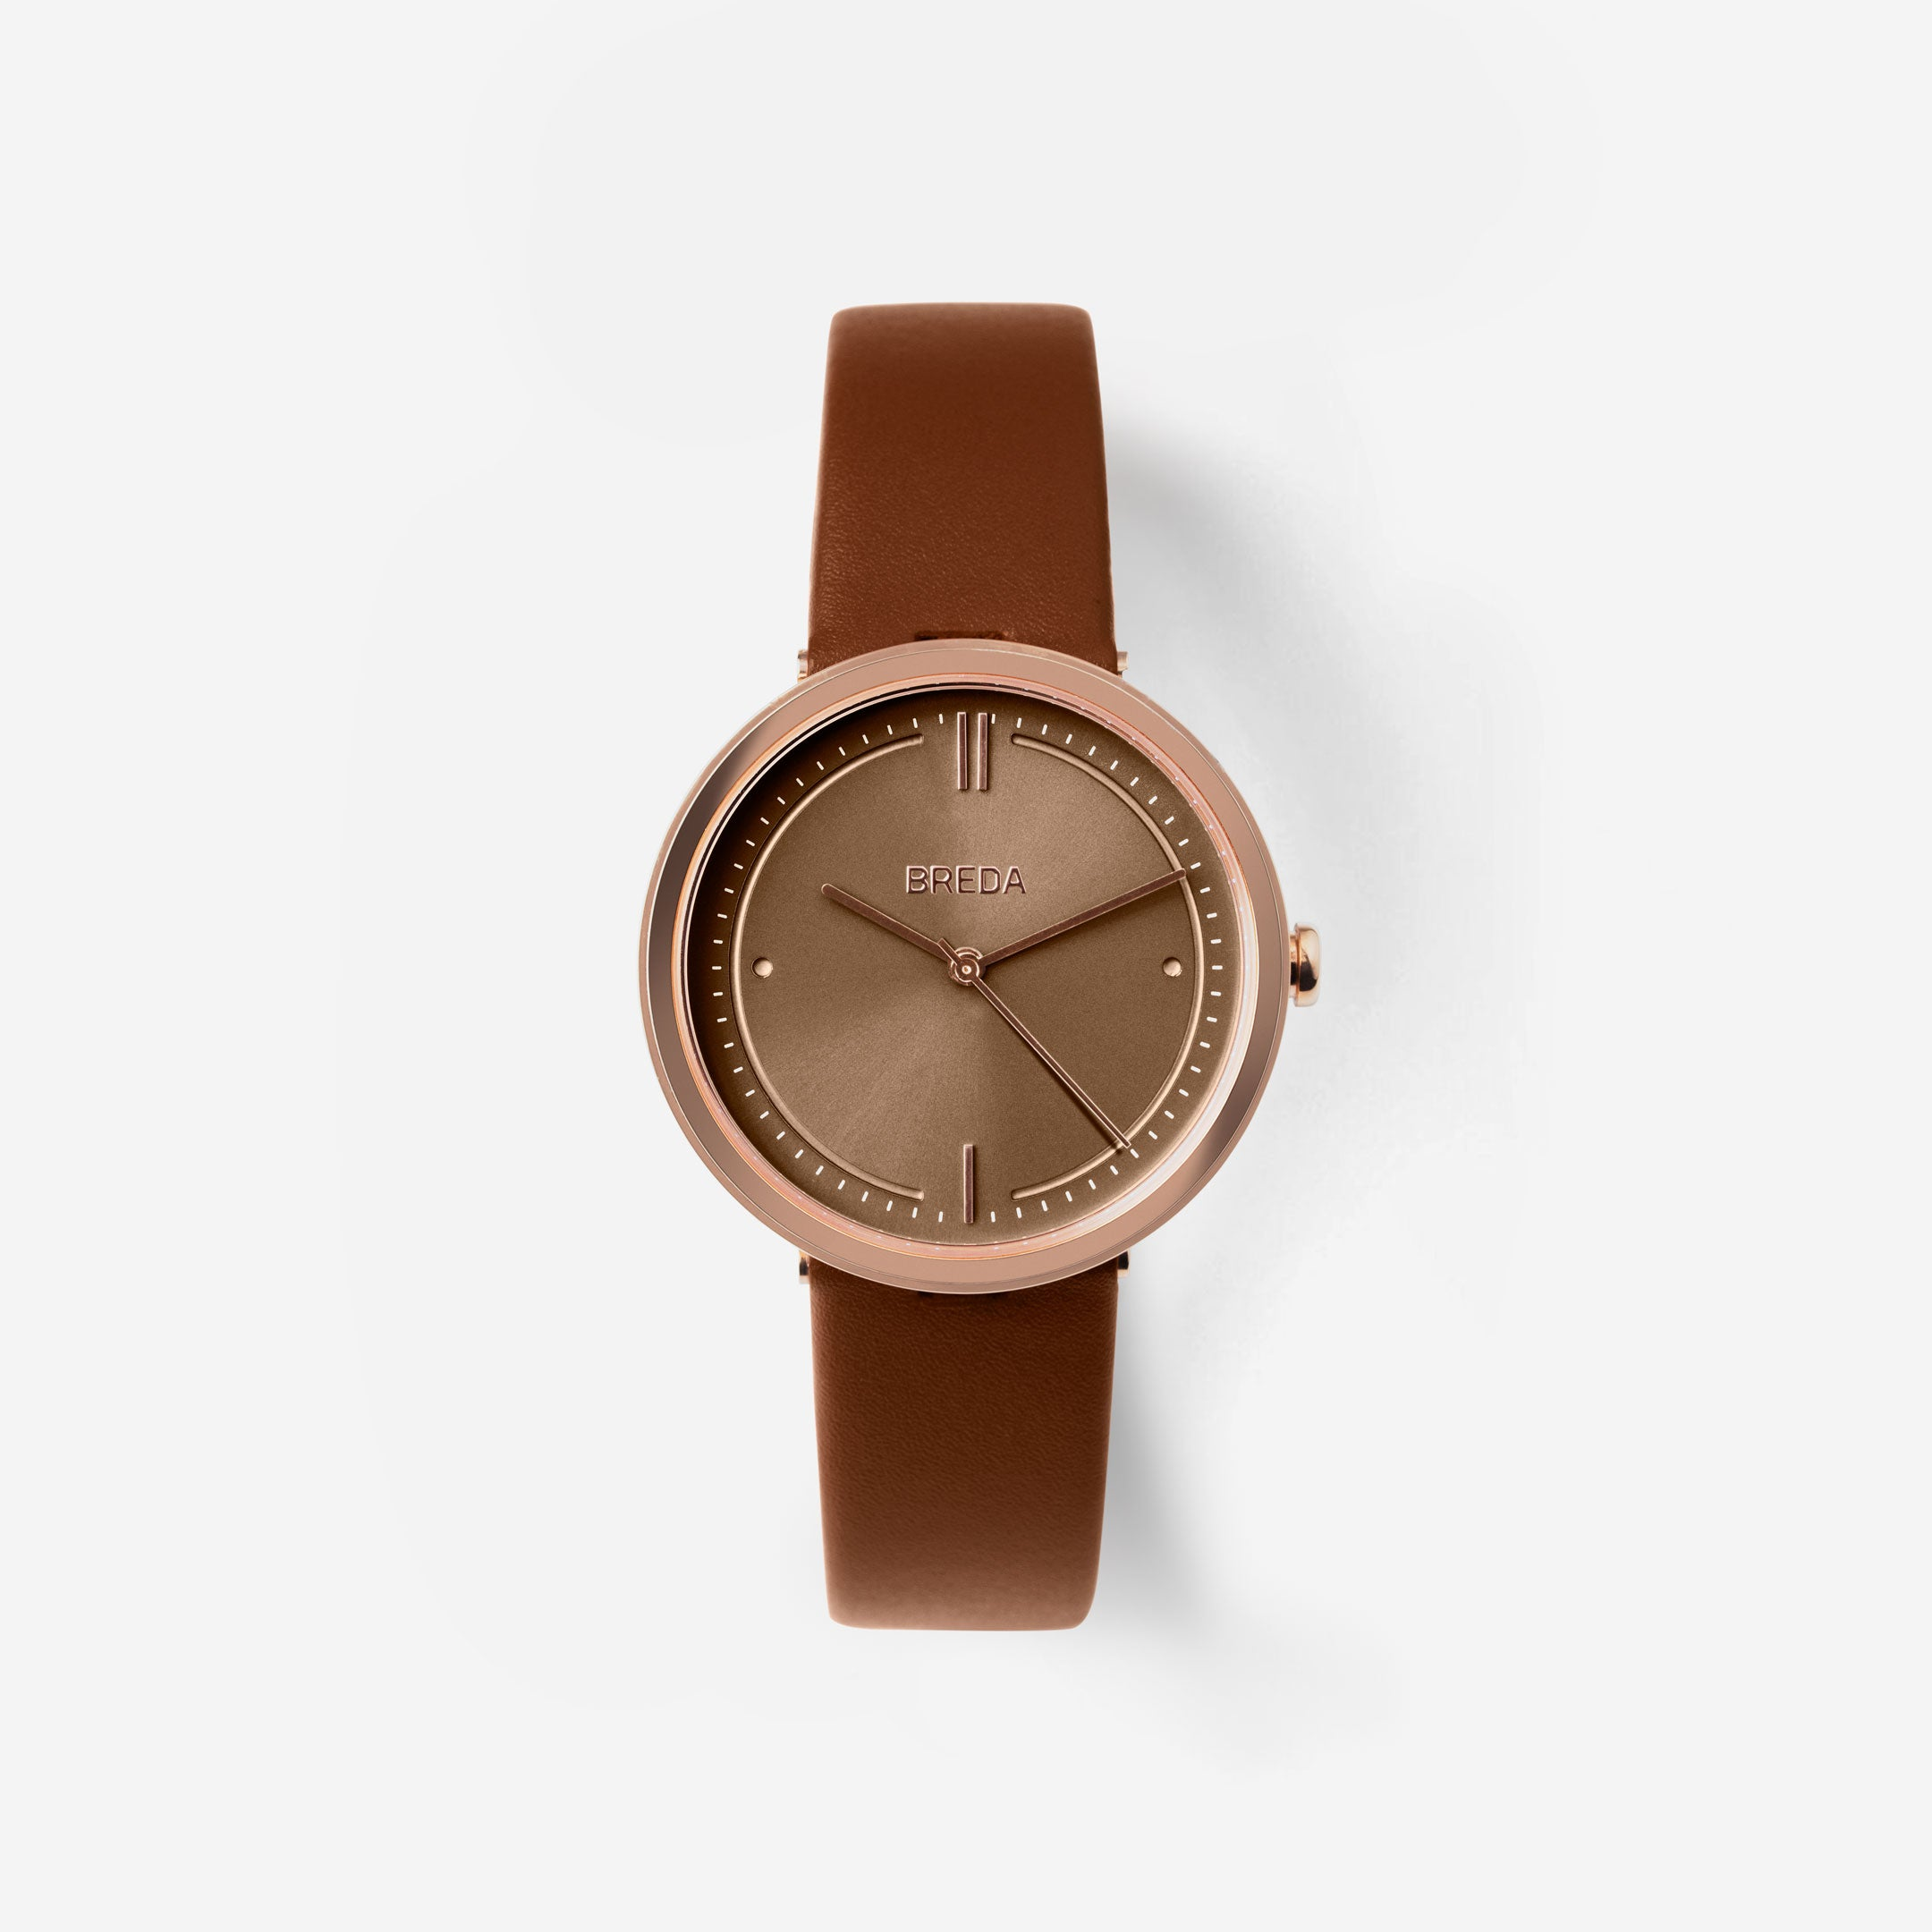 //cdn.shopify.com/s/files/1/0879/6650/products/breda-agnes-1733d-rosegold-brown-leather-watch-front_1024x1024.jpg?v=1522789096